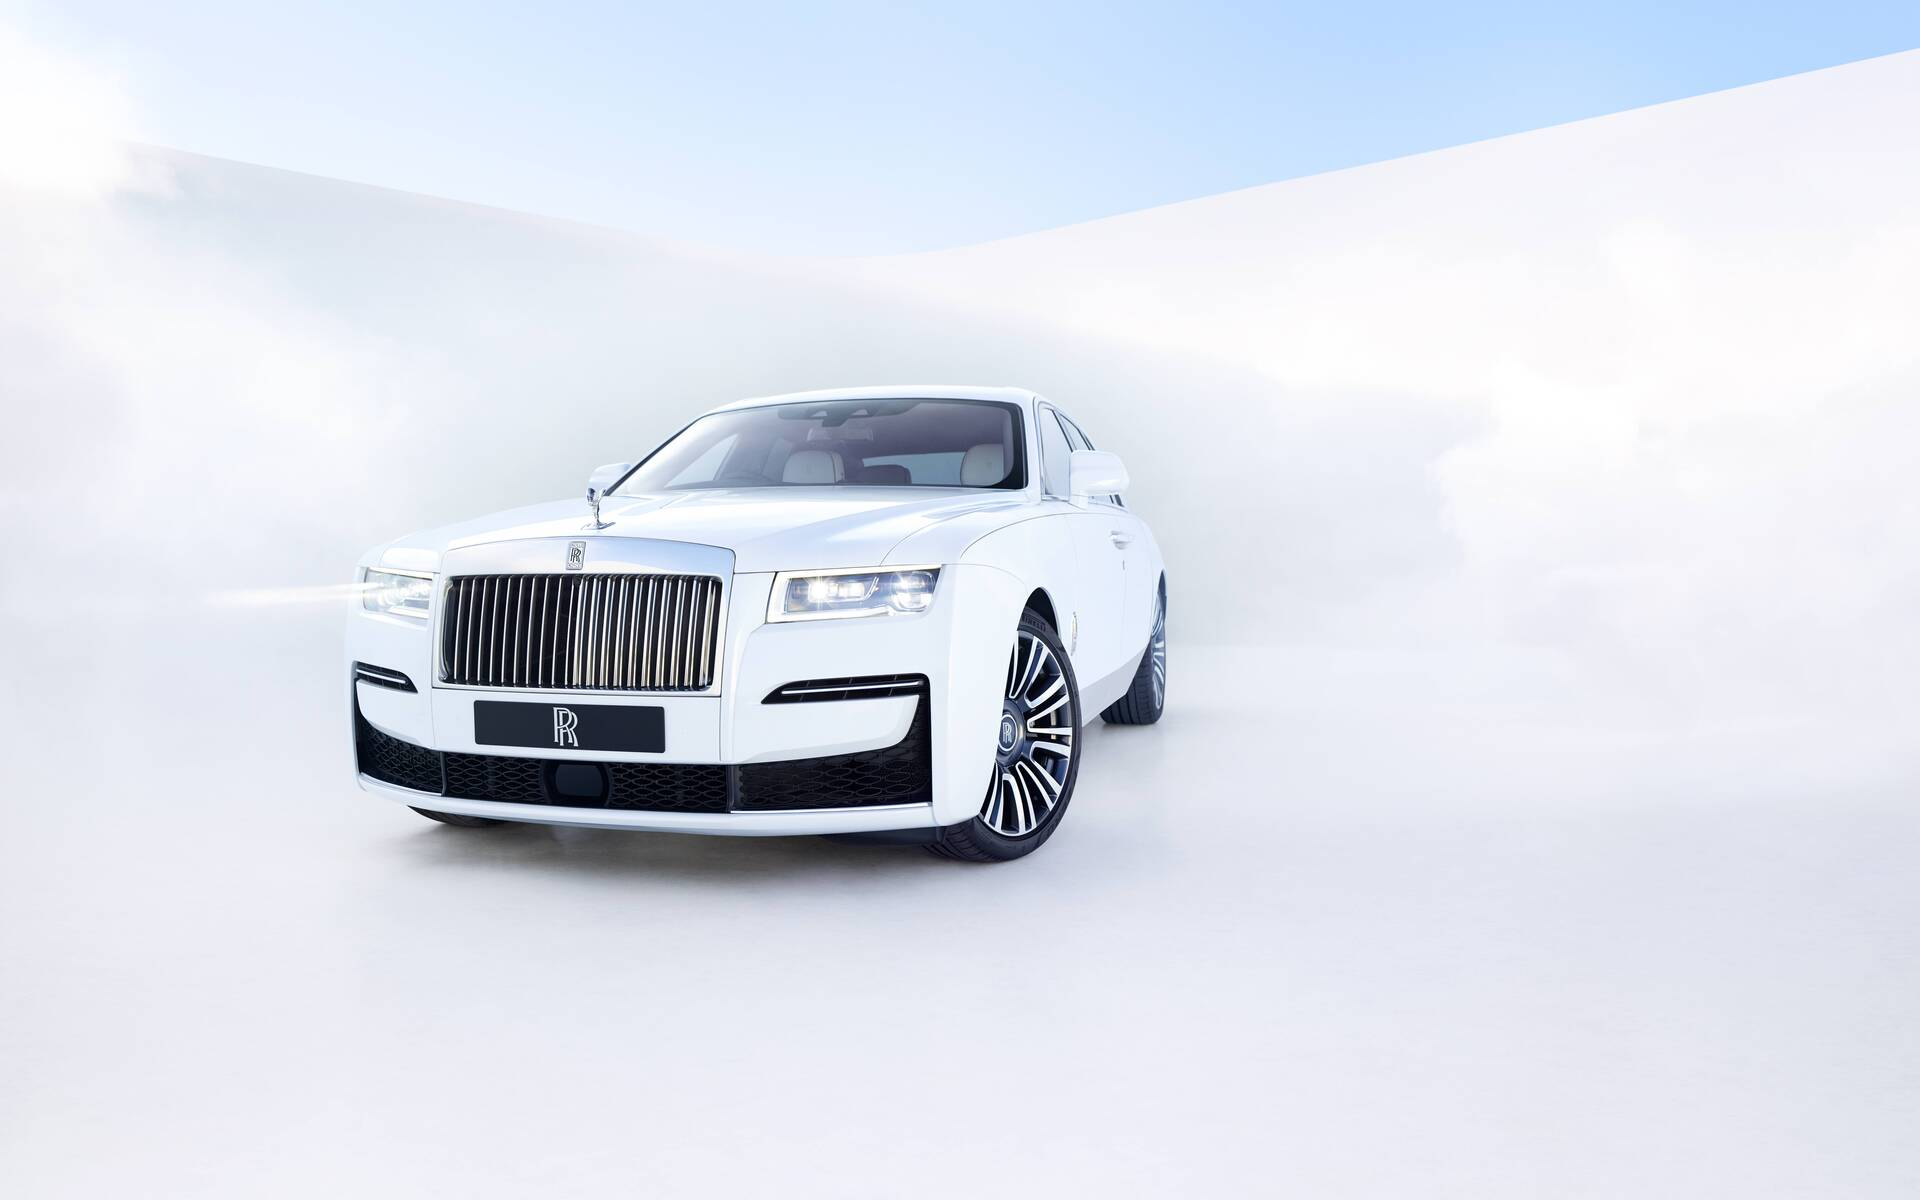 2021 Rolls Royce Ghost News Reviews Picture Galleries And Videos The Car Guide